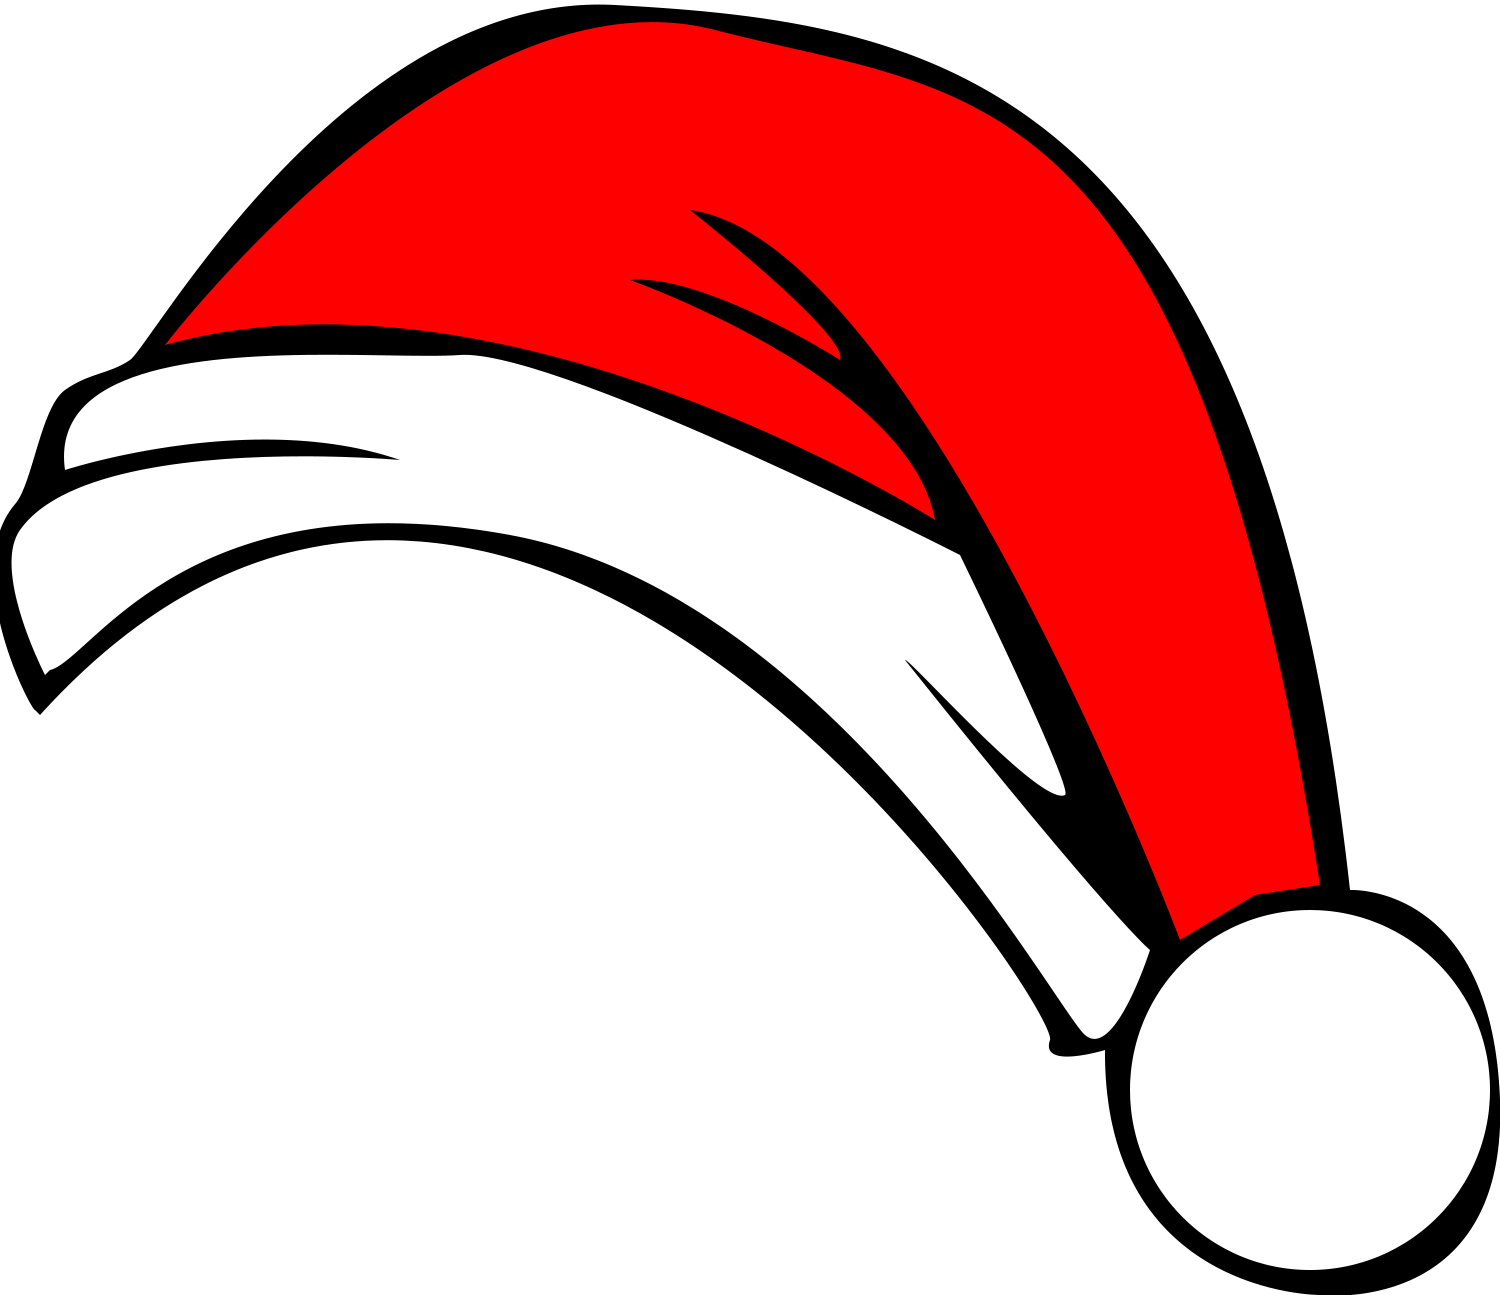 santa hat clip art cartoon rh clipart info  santa claus hat clipart free